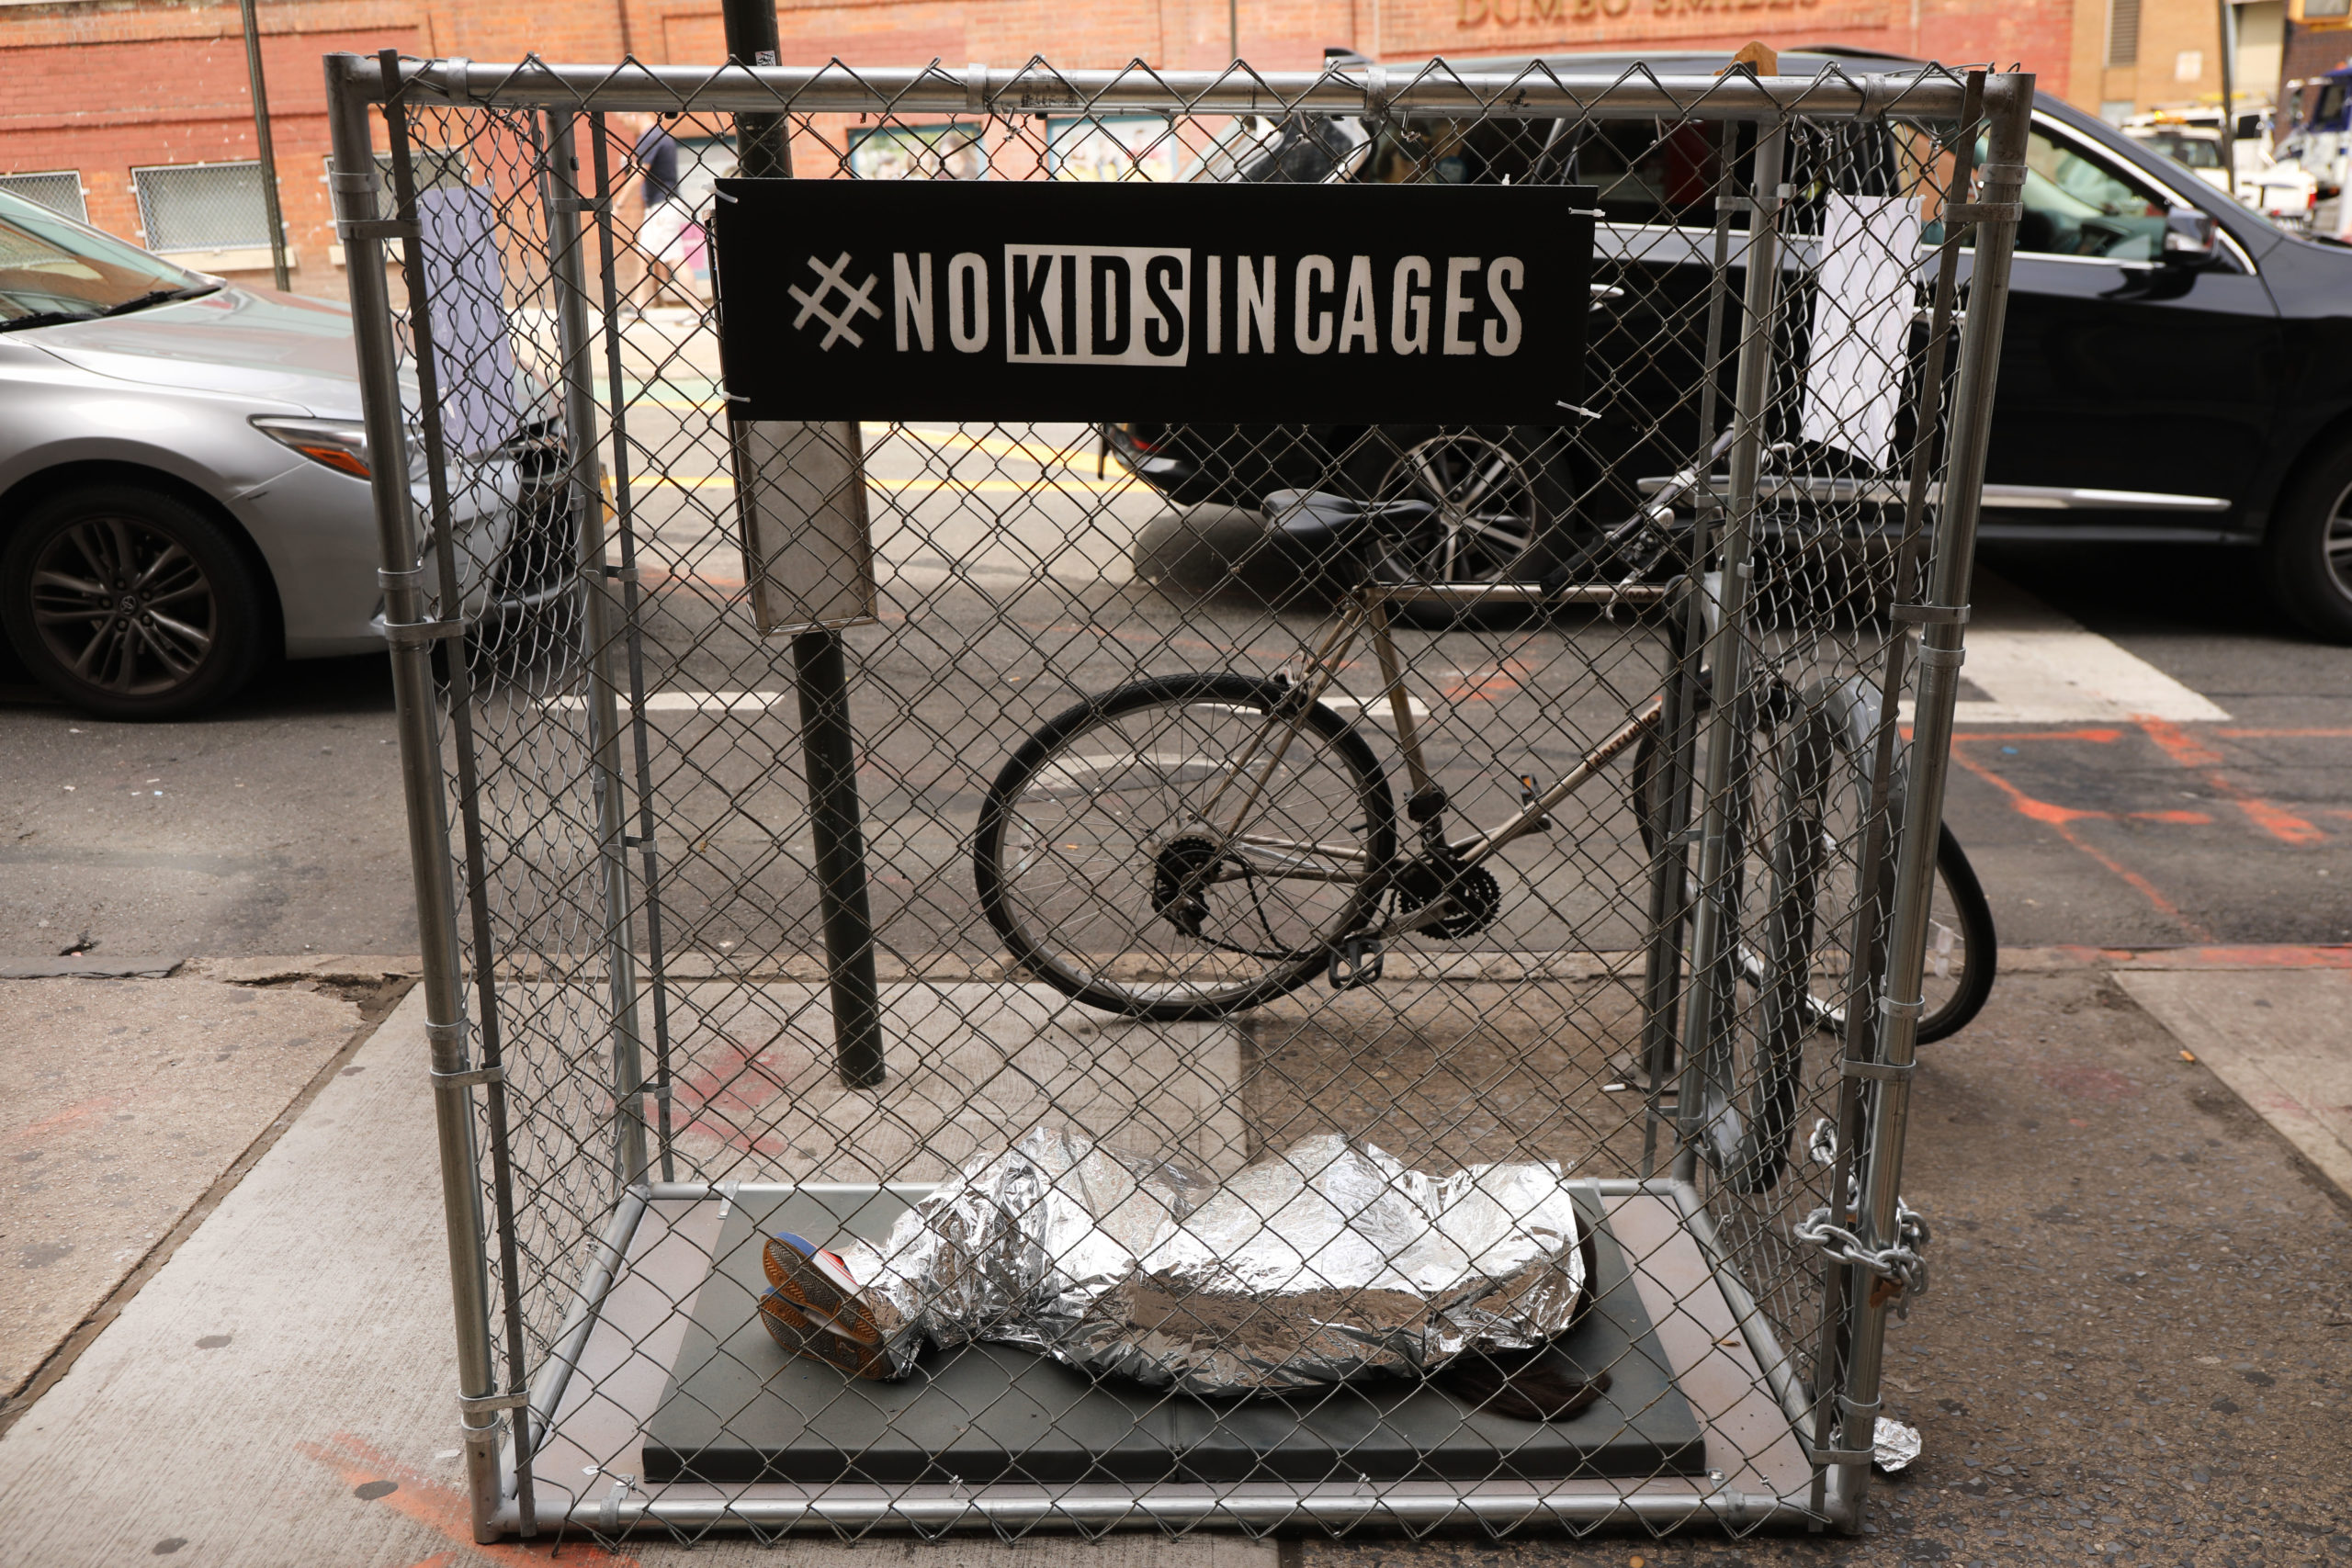 NEW YORK, NEW YORK - JUNE 12: A pop-up art installation depicting a small child curled up underneath a foil survival blanket in a chain-link cage stands along a Brooklyn street on June 12, 2019 in New York City. (Photo by Spencer Platt/Getty Images)